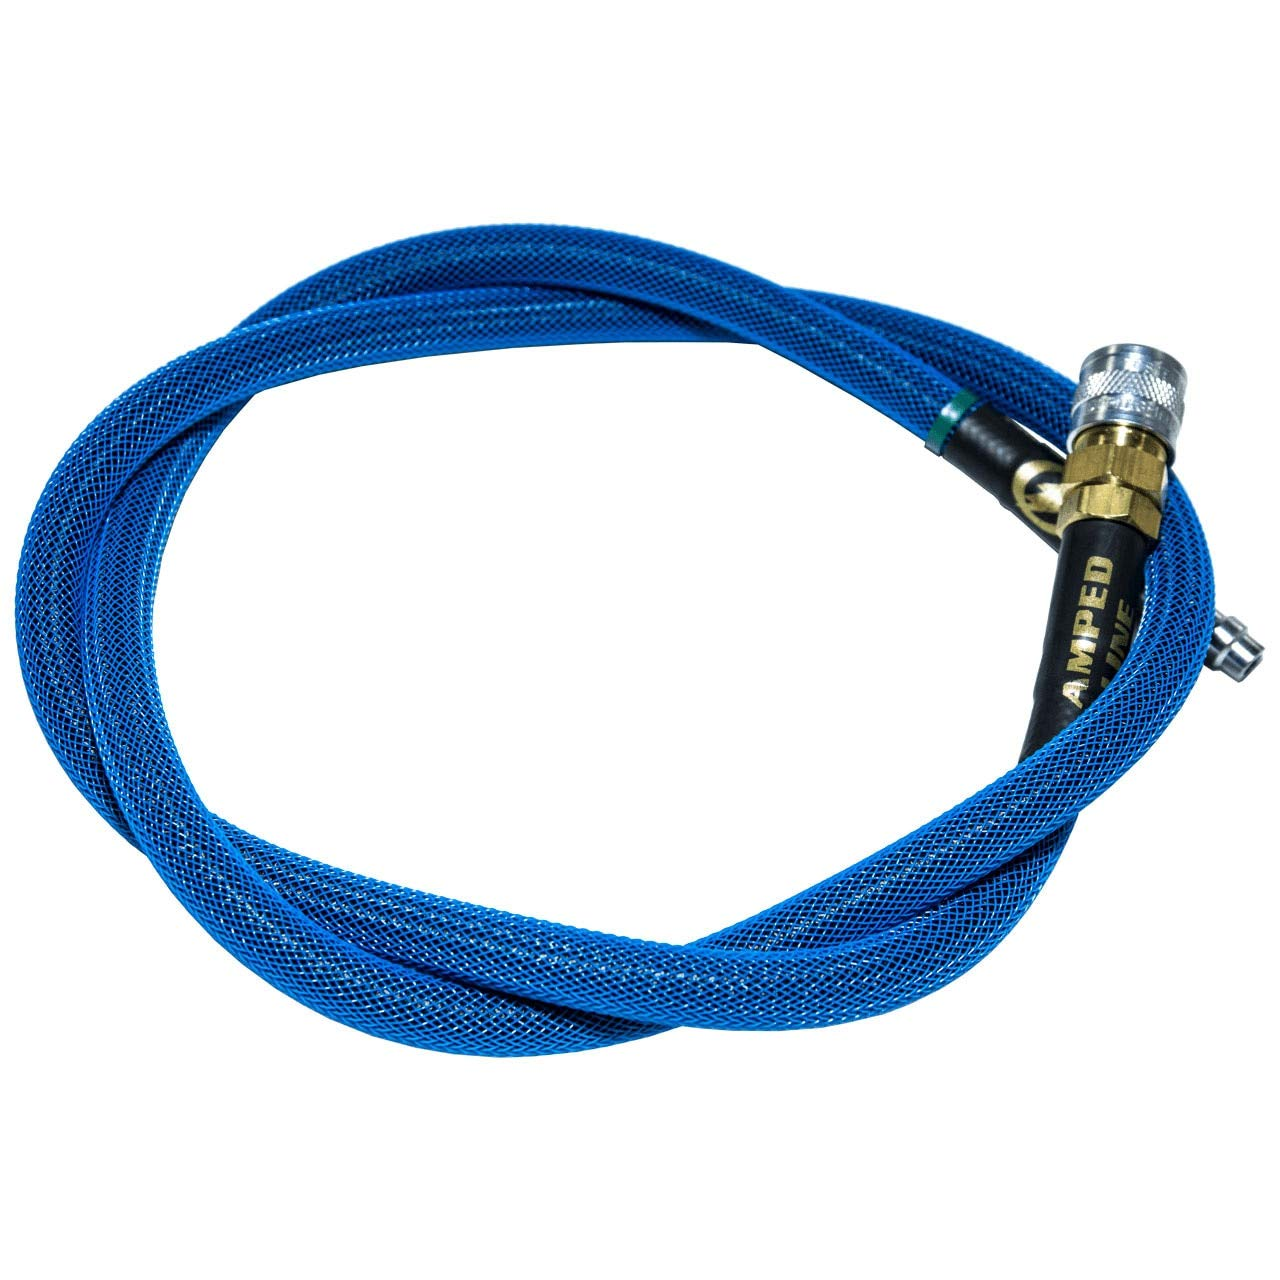 AMPED Airsoft Amped Line   Standard Weave for PolarStar, Wolverine, and Redline HPA Units 36 Inch (Recommended) Blue by AMPED Airsoft